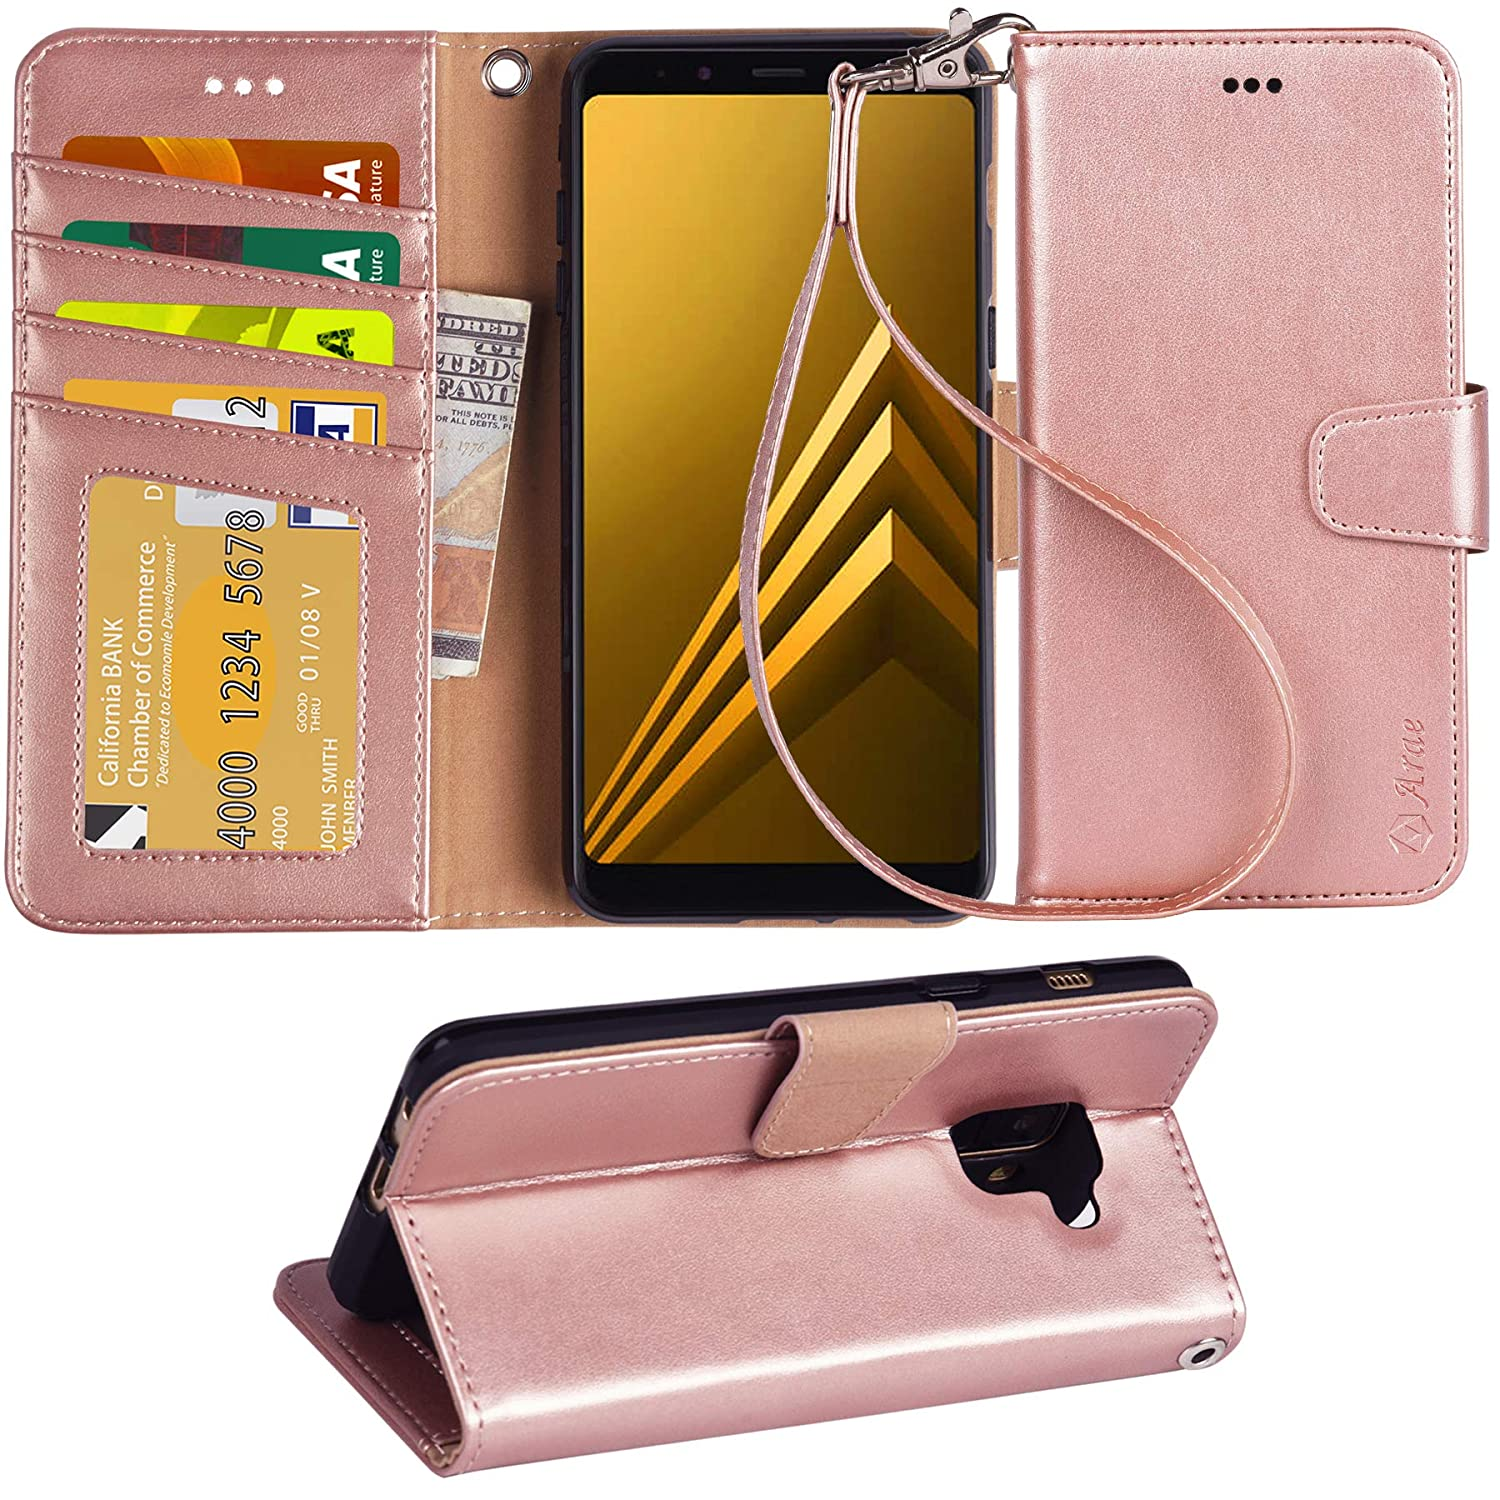 Galaxy a8 2018 Case, Galaxy a8 2018 Holster Arae [Wrist Strap] Flip Folio [Kickstand Feature] PU Leather Wallet case with [4 Slots] ID&Credit Cards Pockets for Galaxy a8 2018 Wallet Case (Rose Gold)